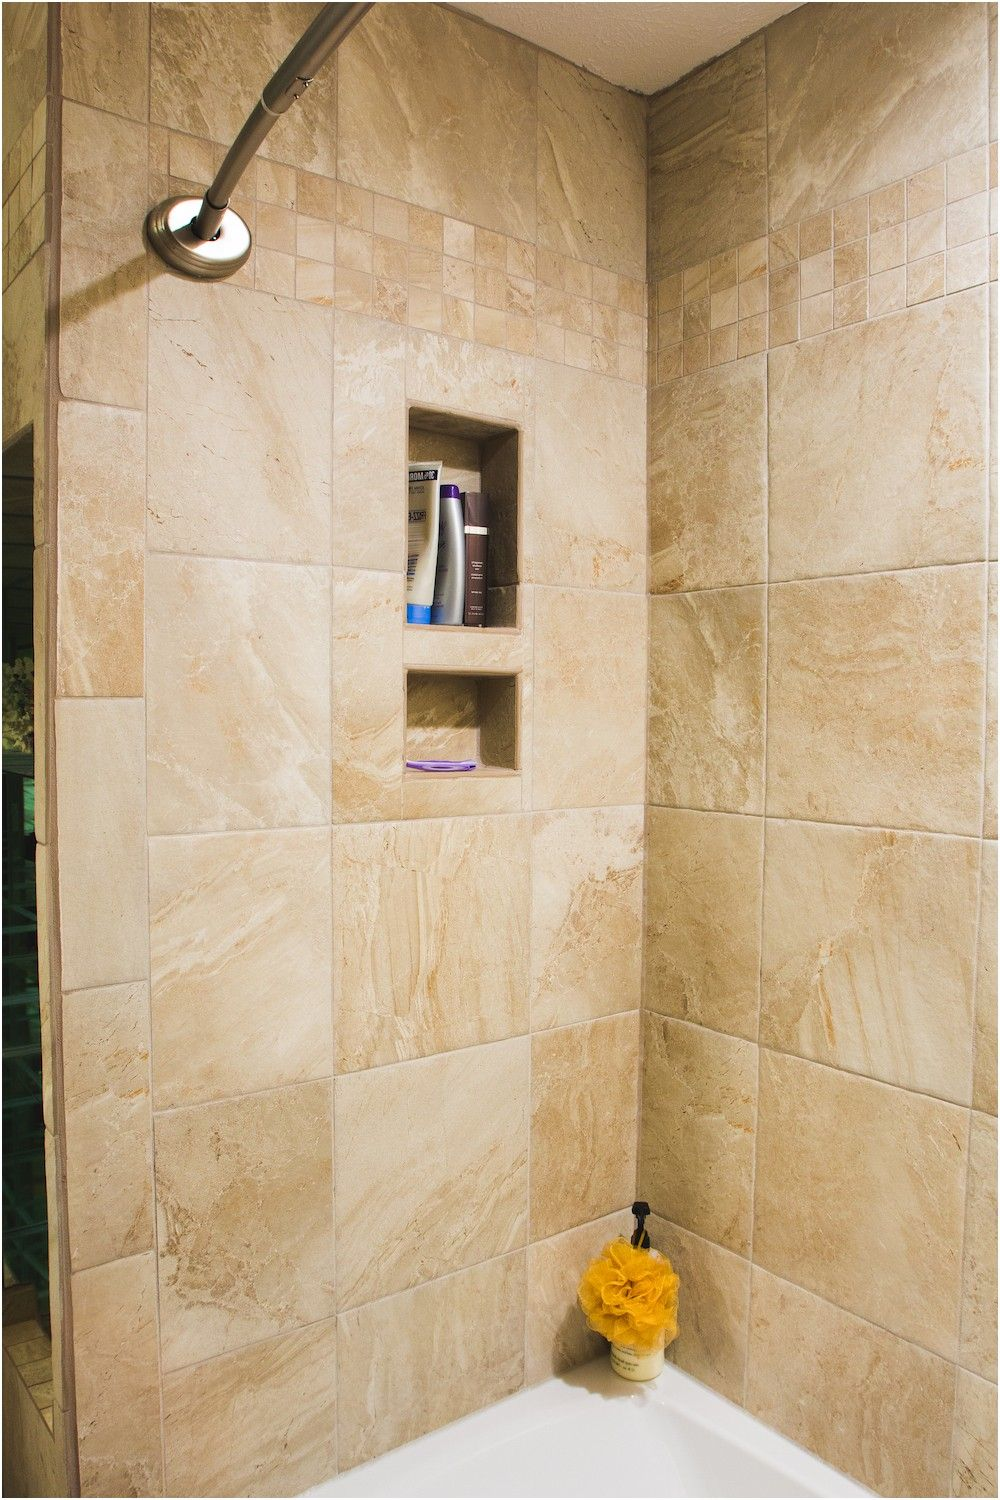 2017 regrouting shower tile cost regrout shower price from Regrout     2017 regrouting shower tile cost regrout shower price from Regrout Bathroom  Floor